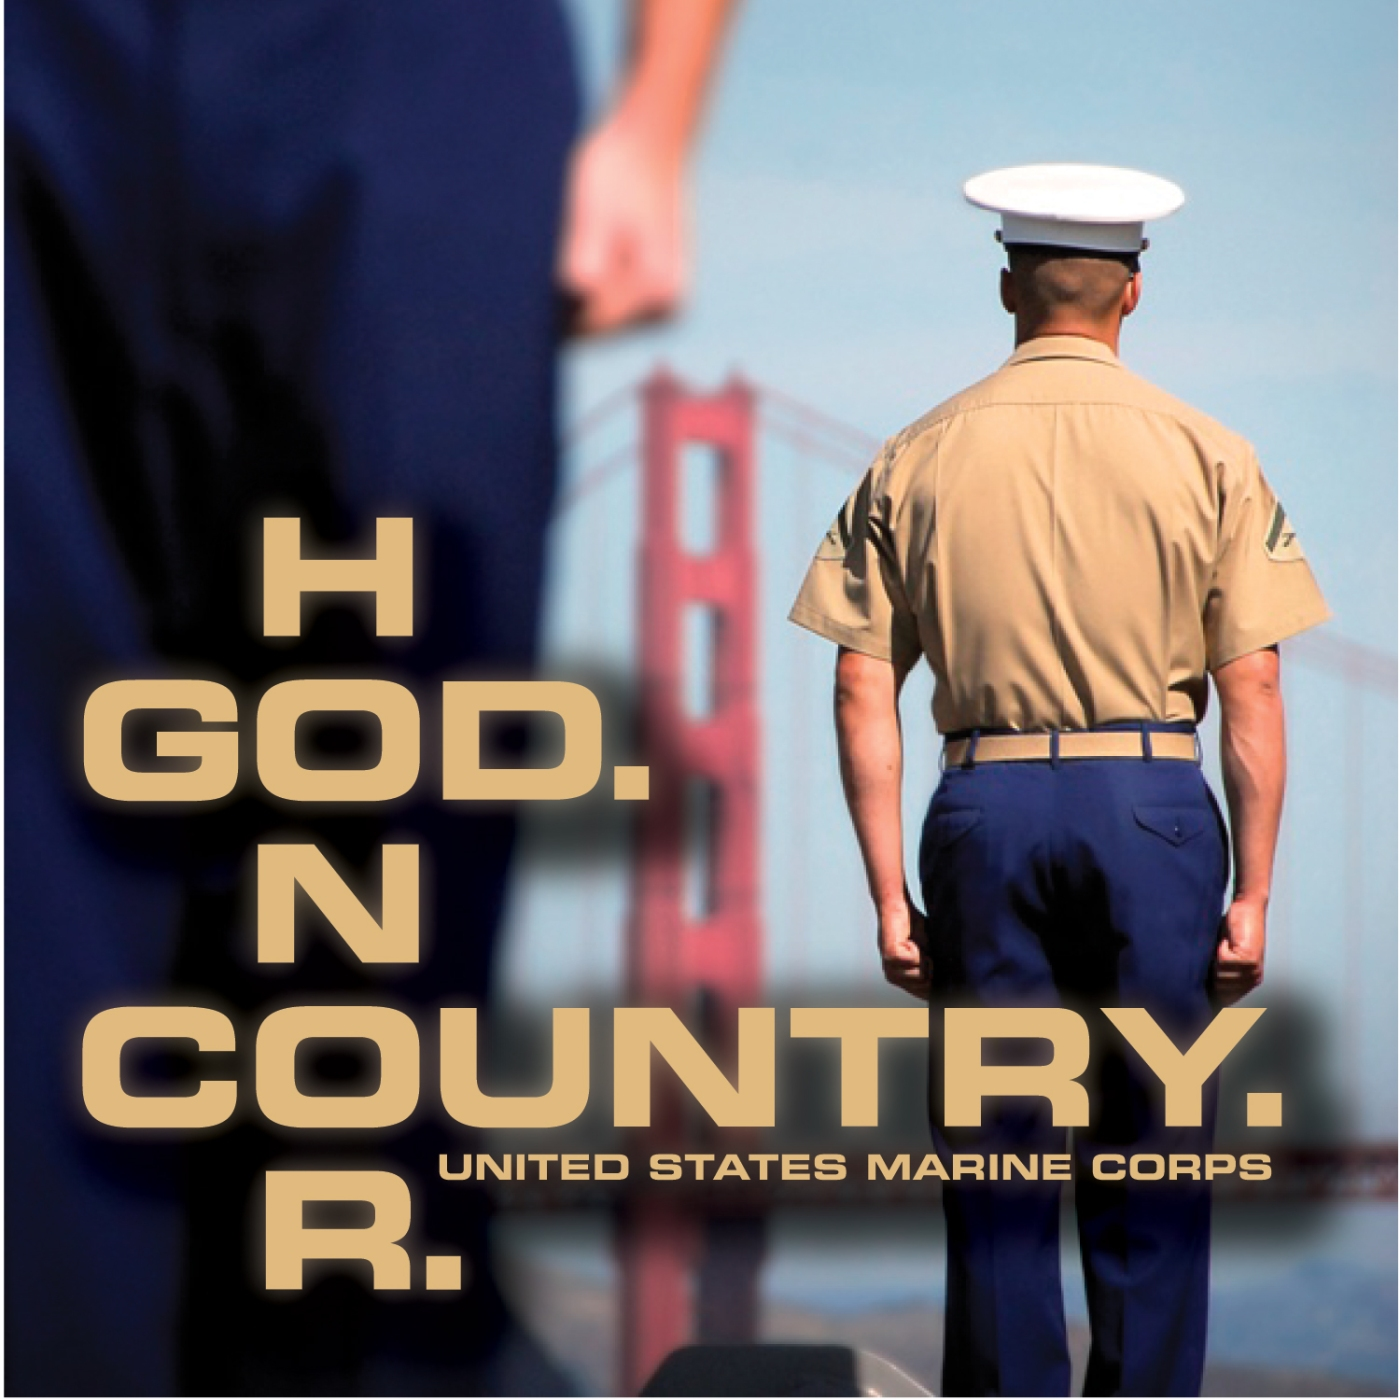 Why I joined the Marine Corps